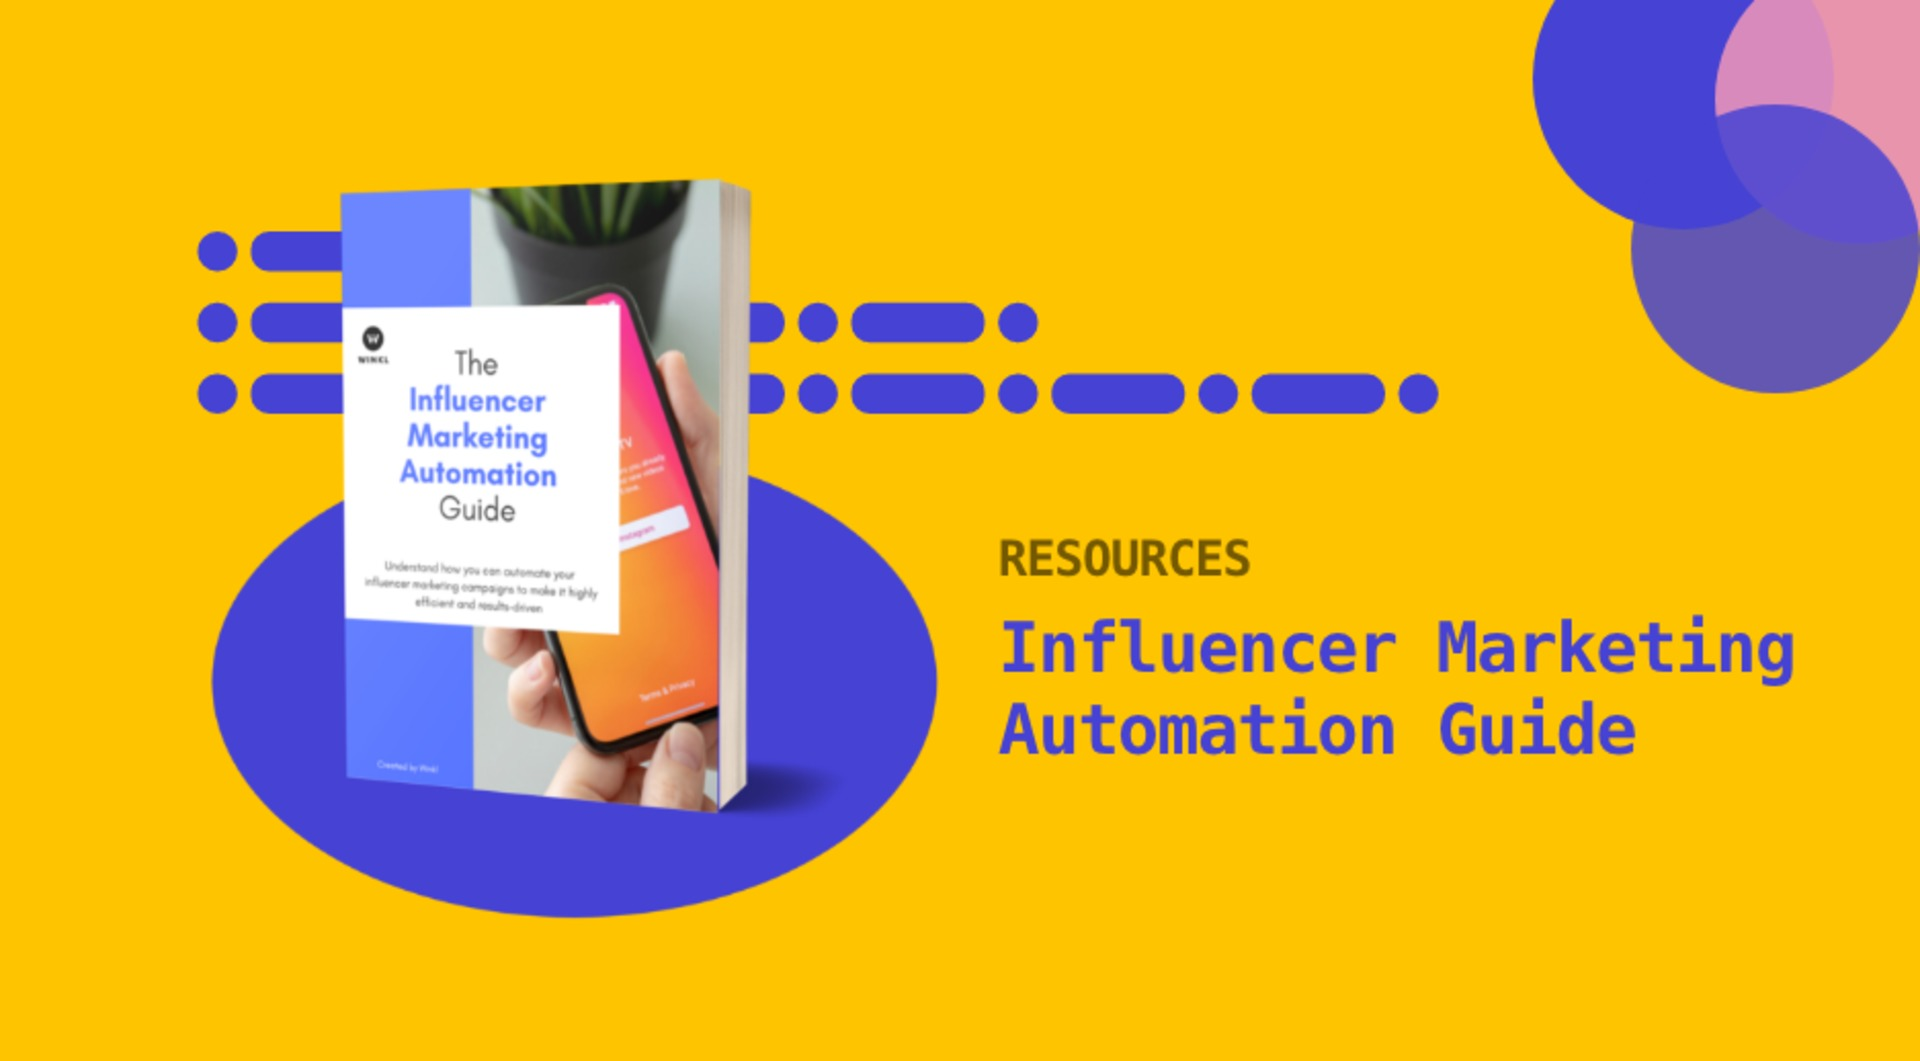 The Influencer Marketing Automation Guide image